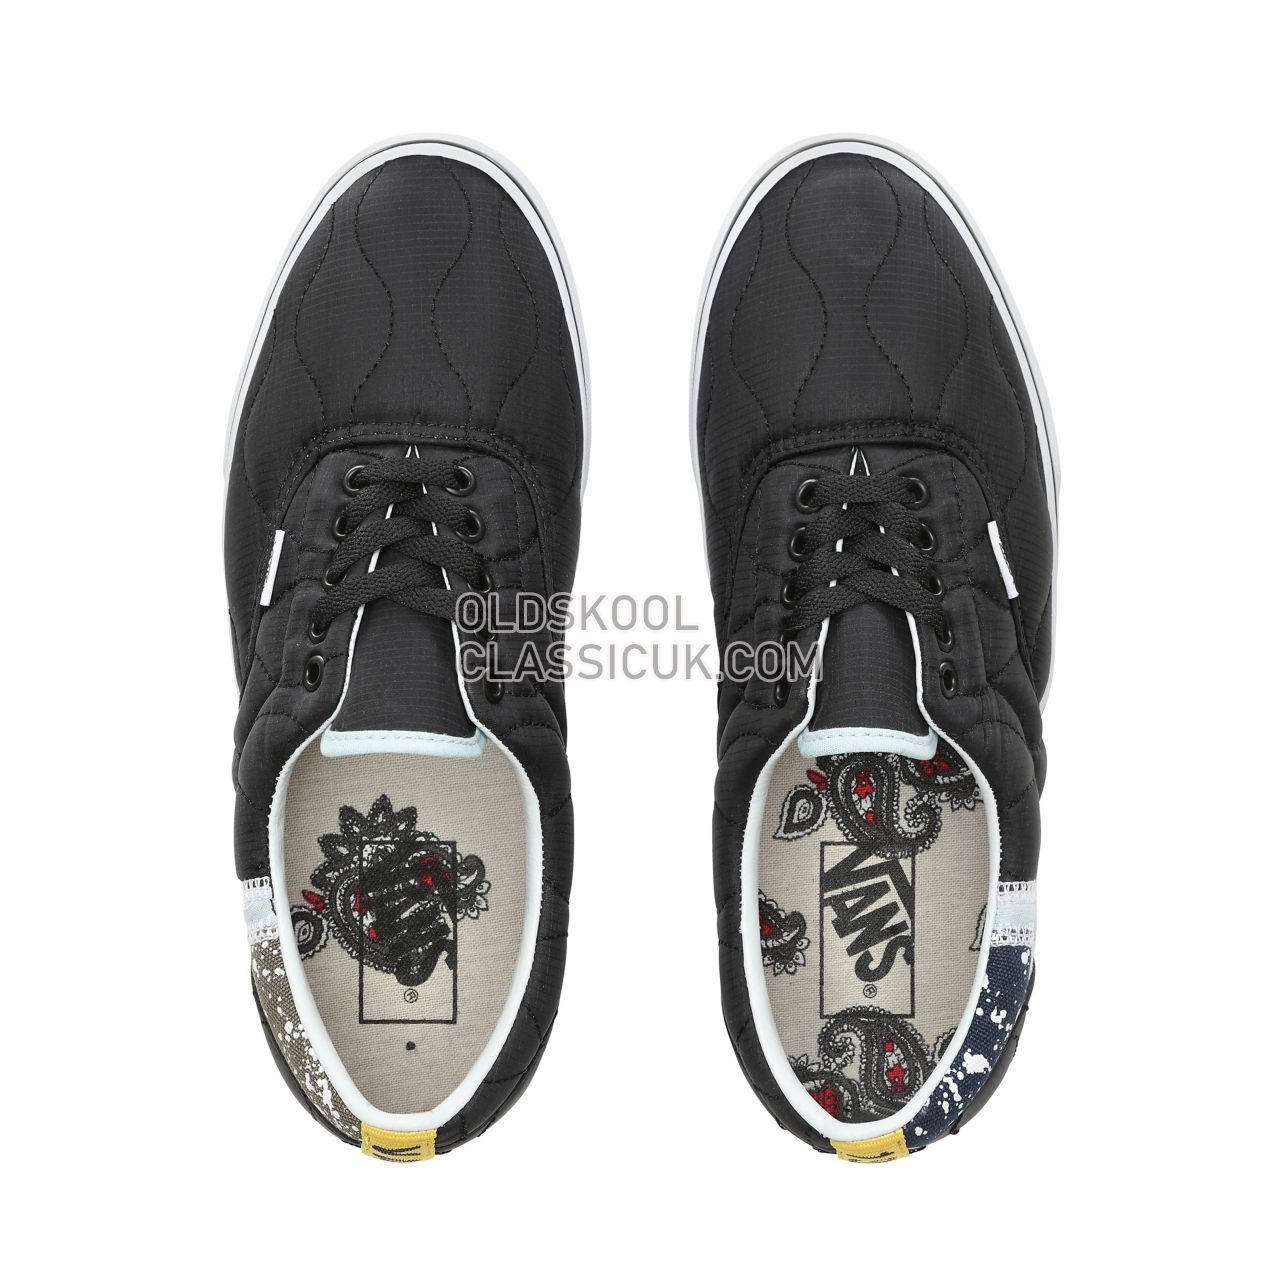 Vans Mixed Quilting Era Sneakers Mens (Mixed Quilting) Black/True White VN0A38FRVP6 Shoes